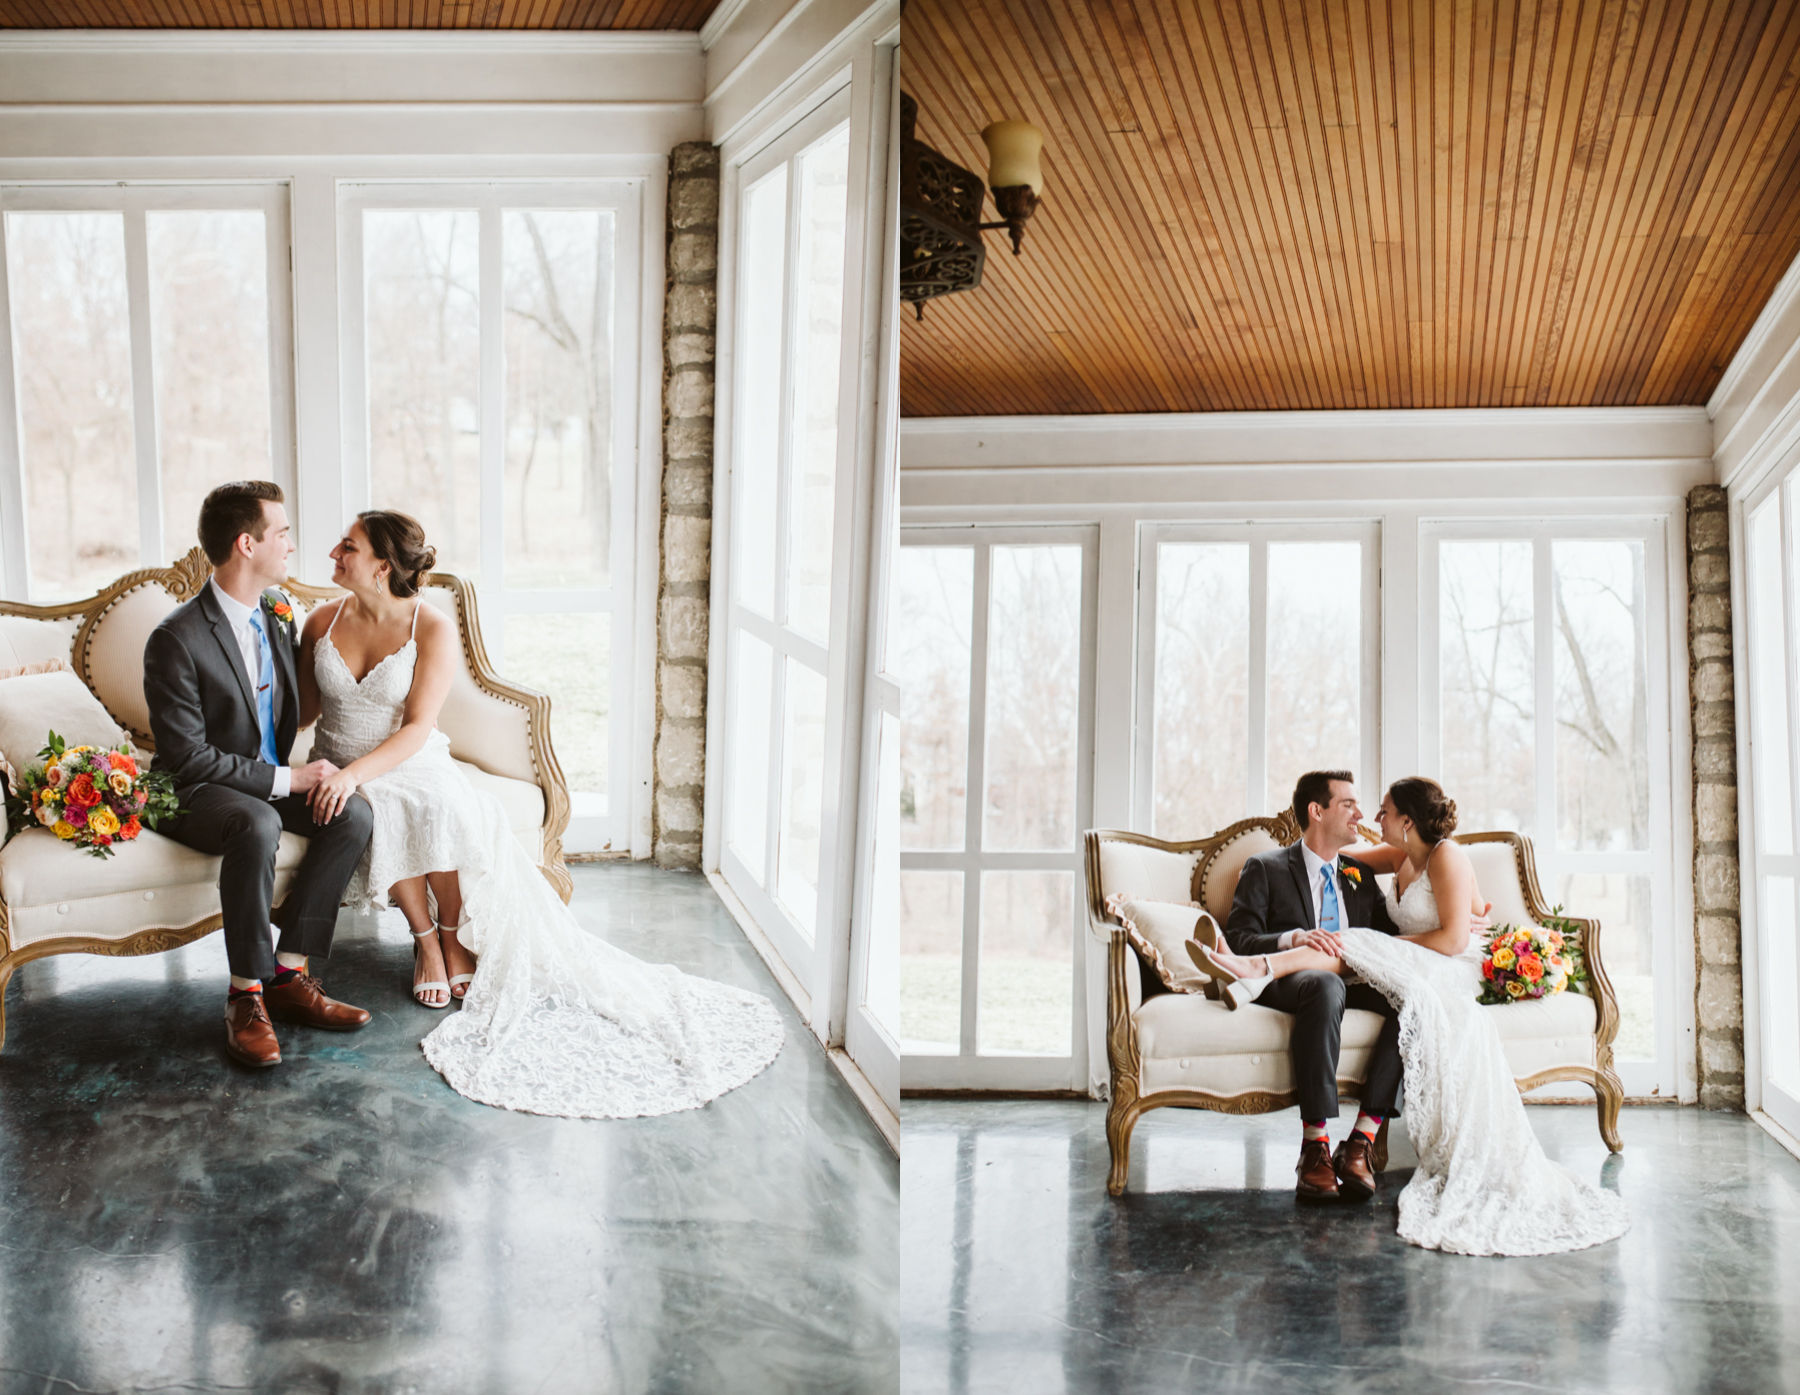 Bride and groom sit in a sunroom at the stone house of st charles wedding venue in missouri